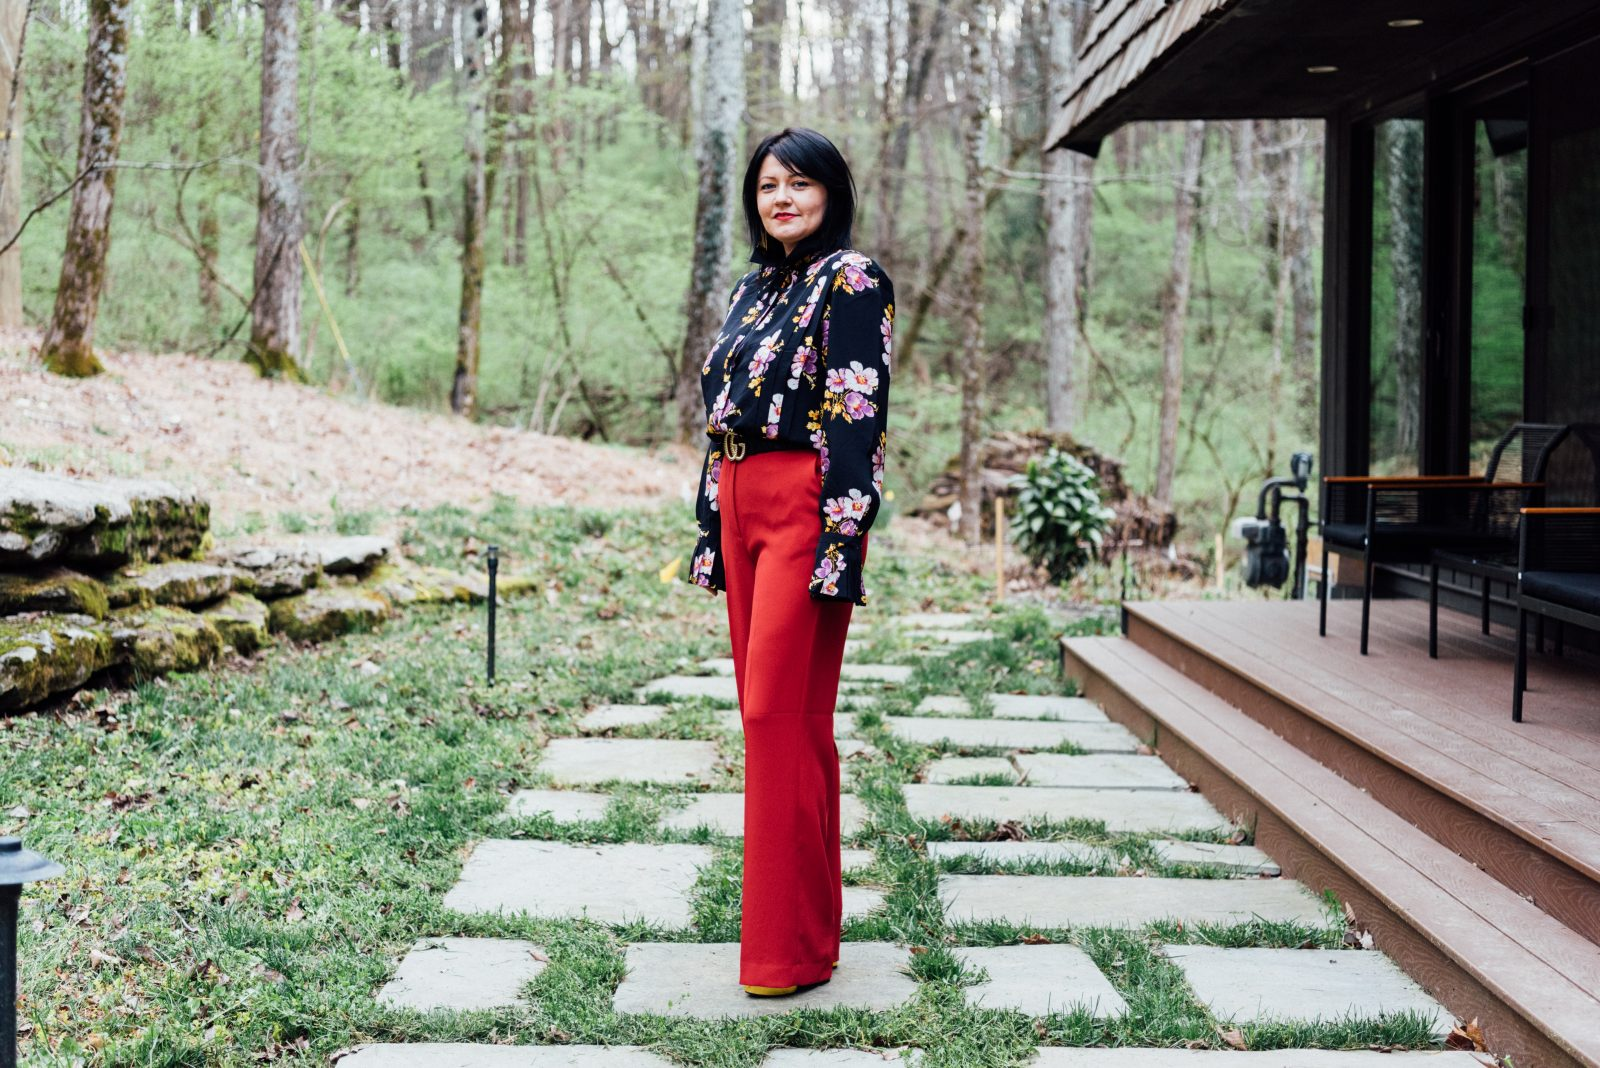 Woman with a black floral shirt and red pants